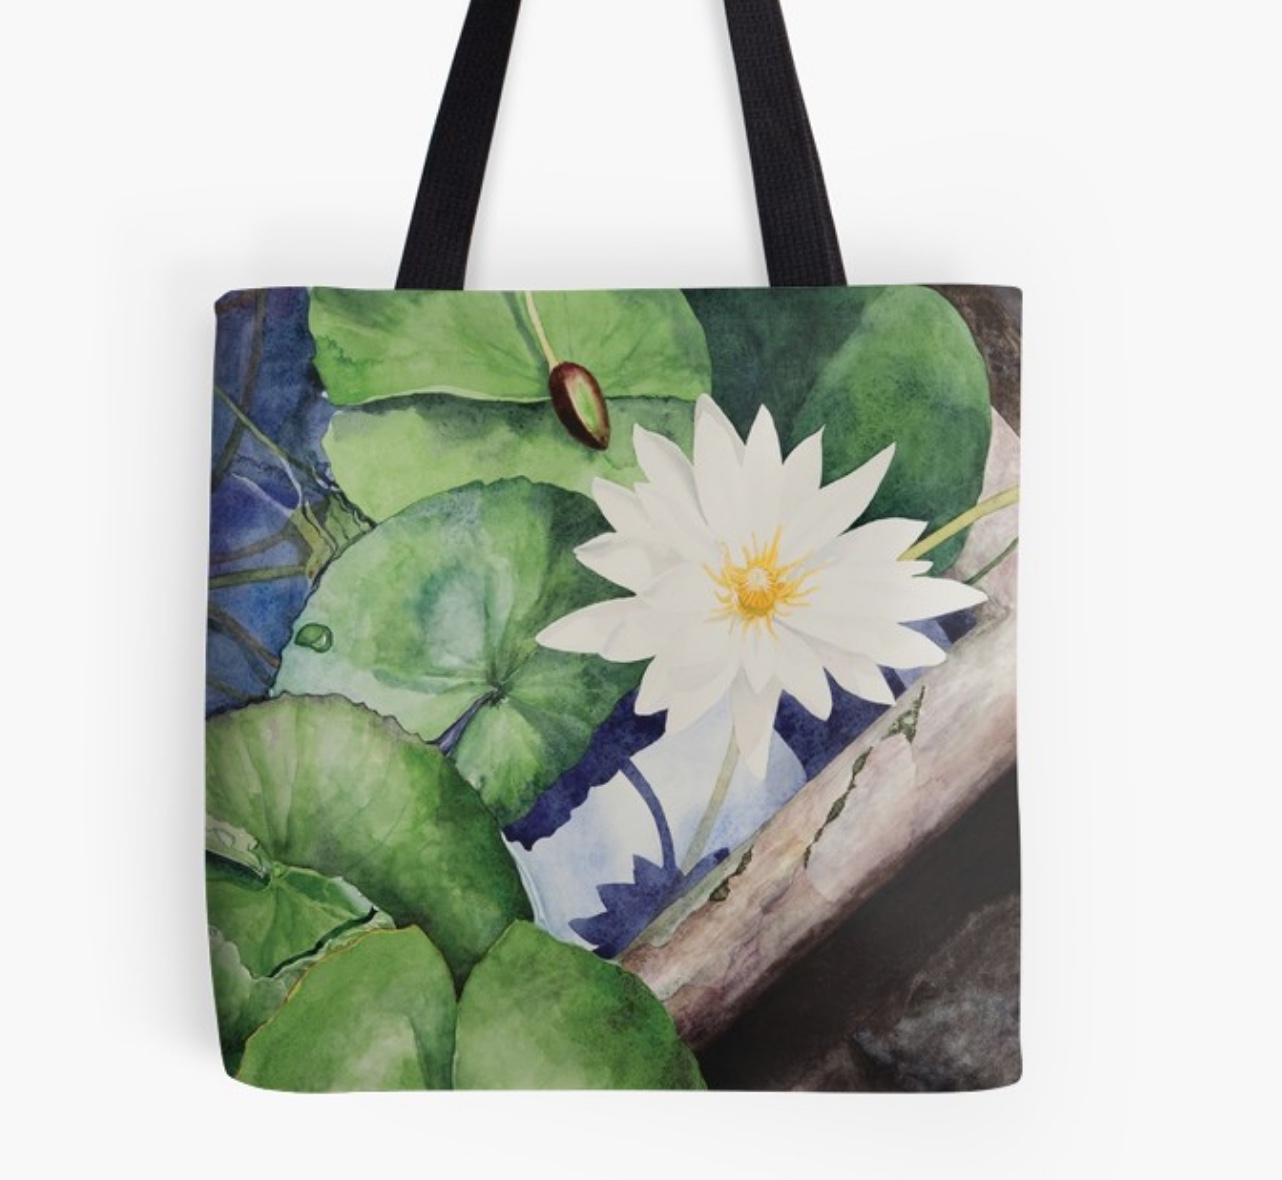 New! Greenhouse Lily Tote - This design is available in men's, women's and kids' apparel, home decor and gift items.